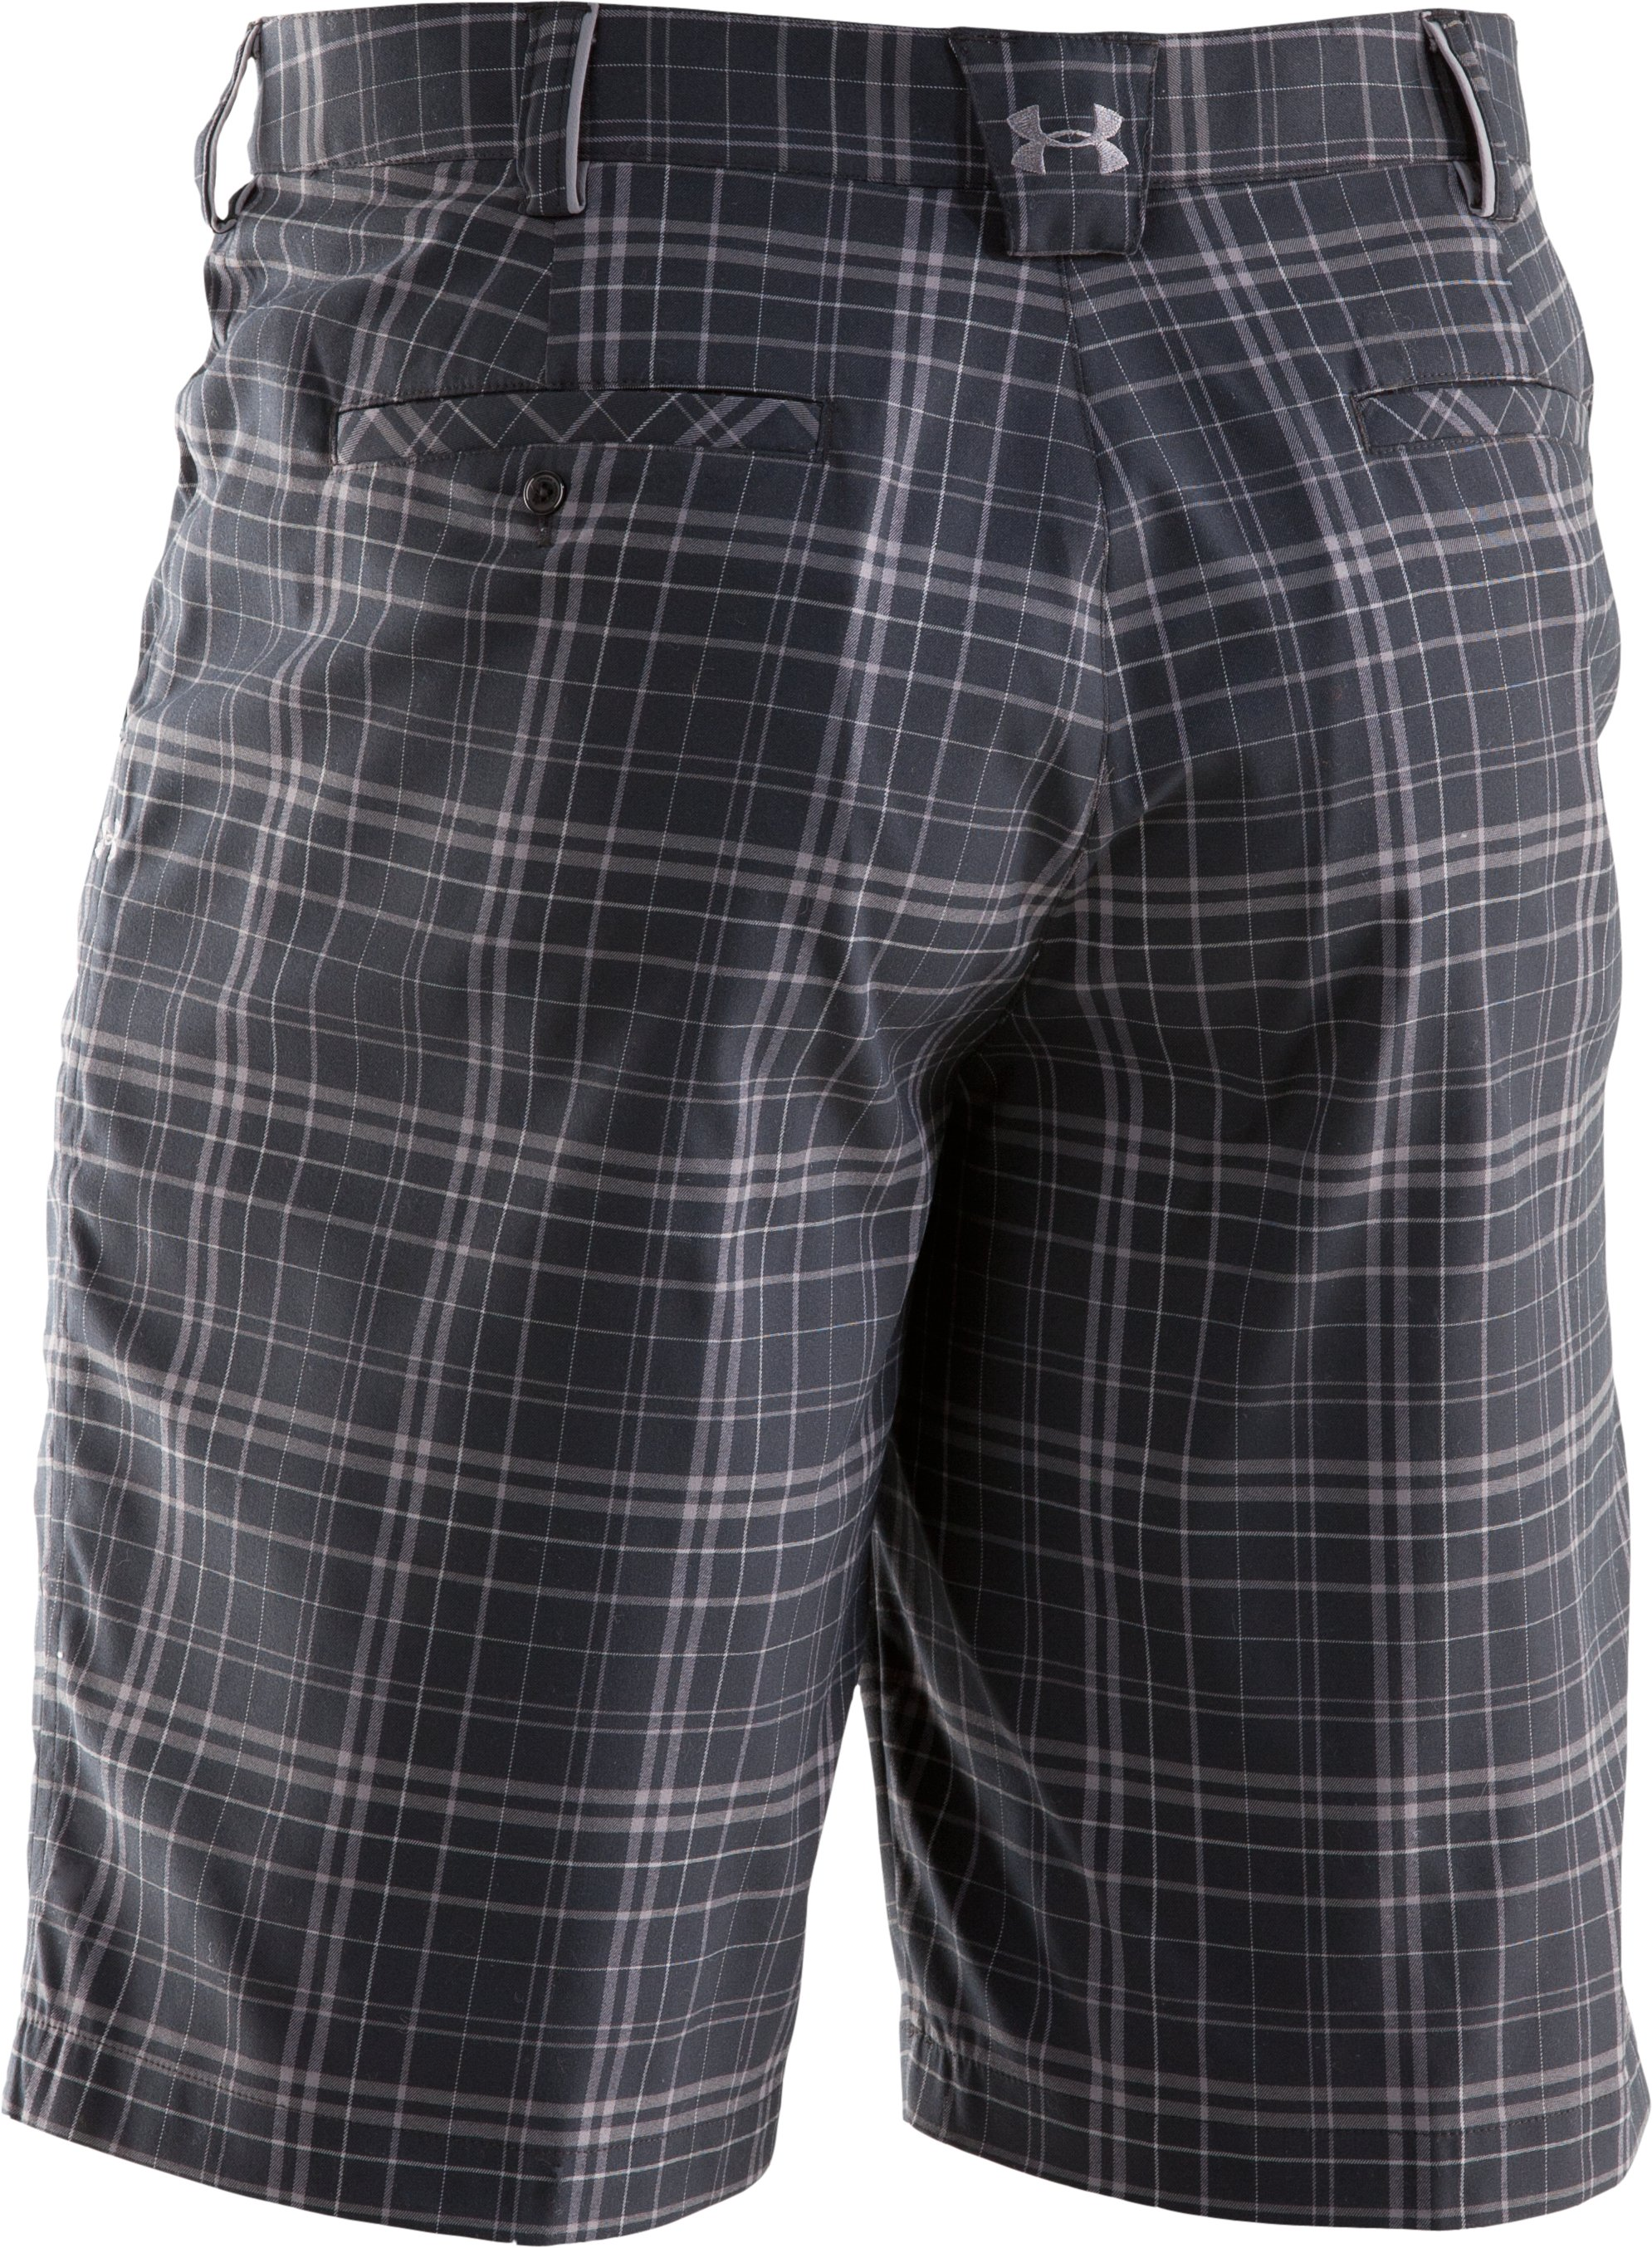 Men's UA Forged Plaid Golf Shorts, Black